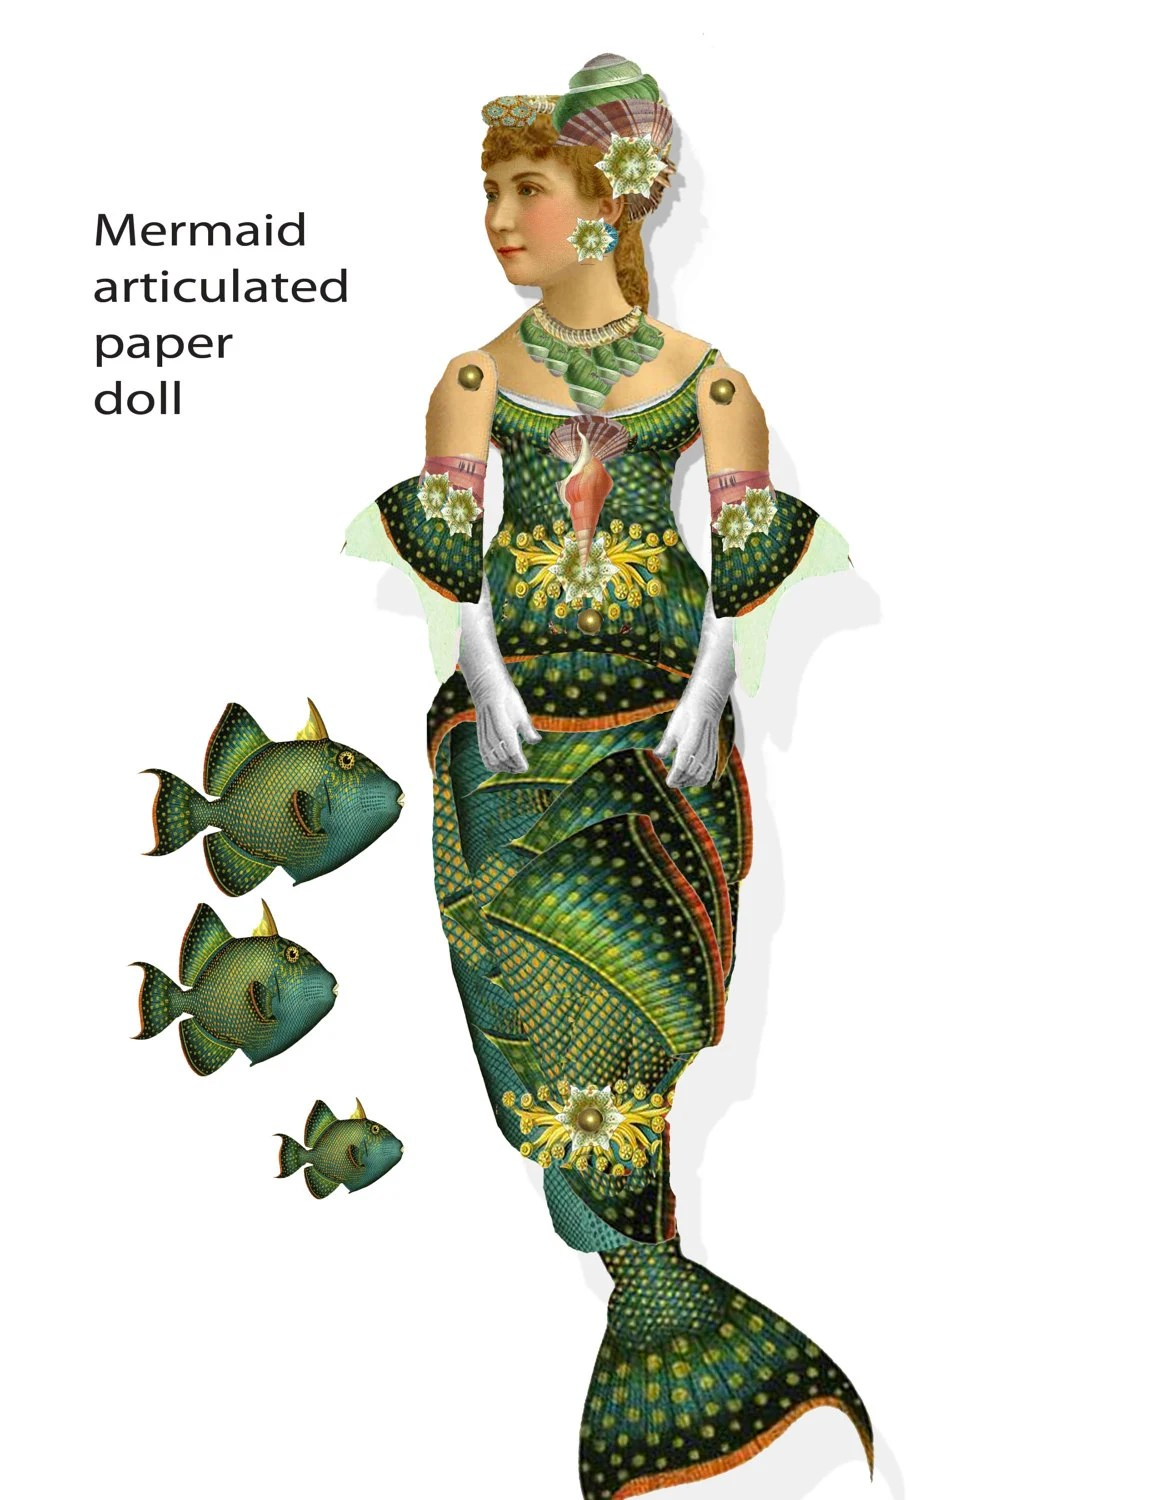 printable Mermaid articulated paper doll download printable Etsy